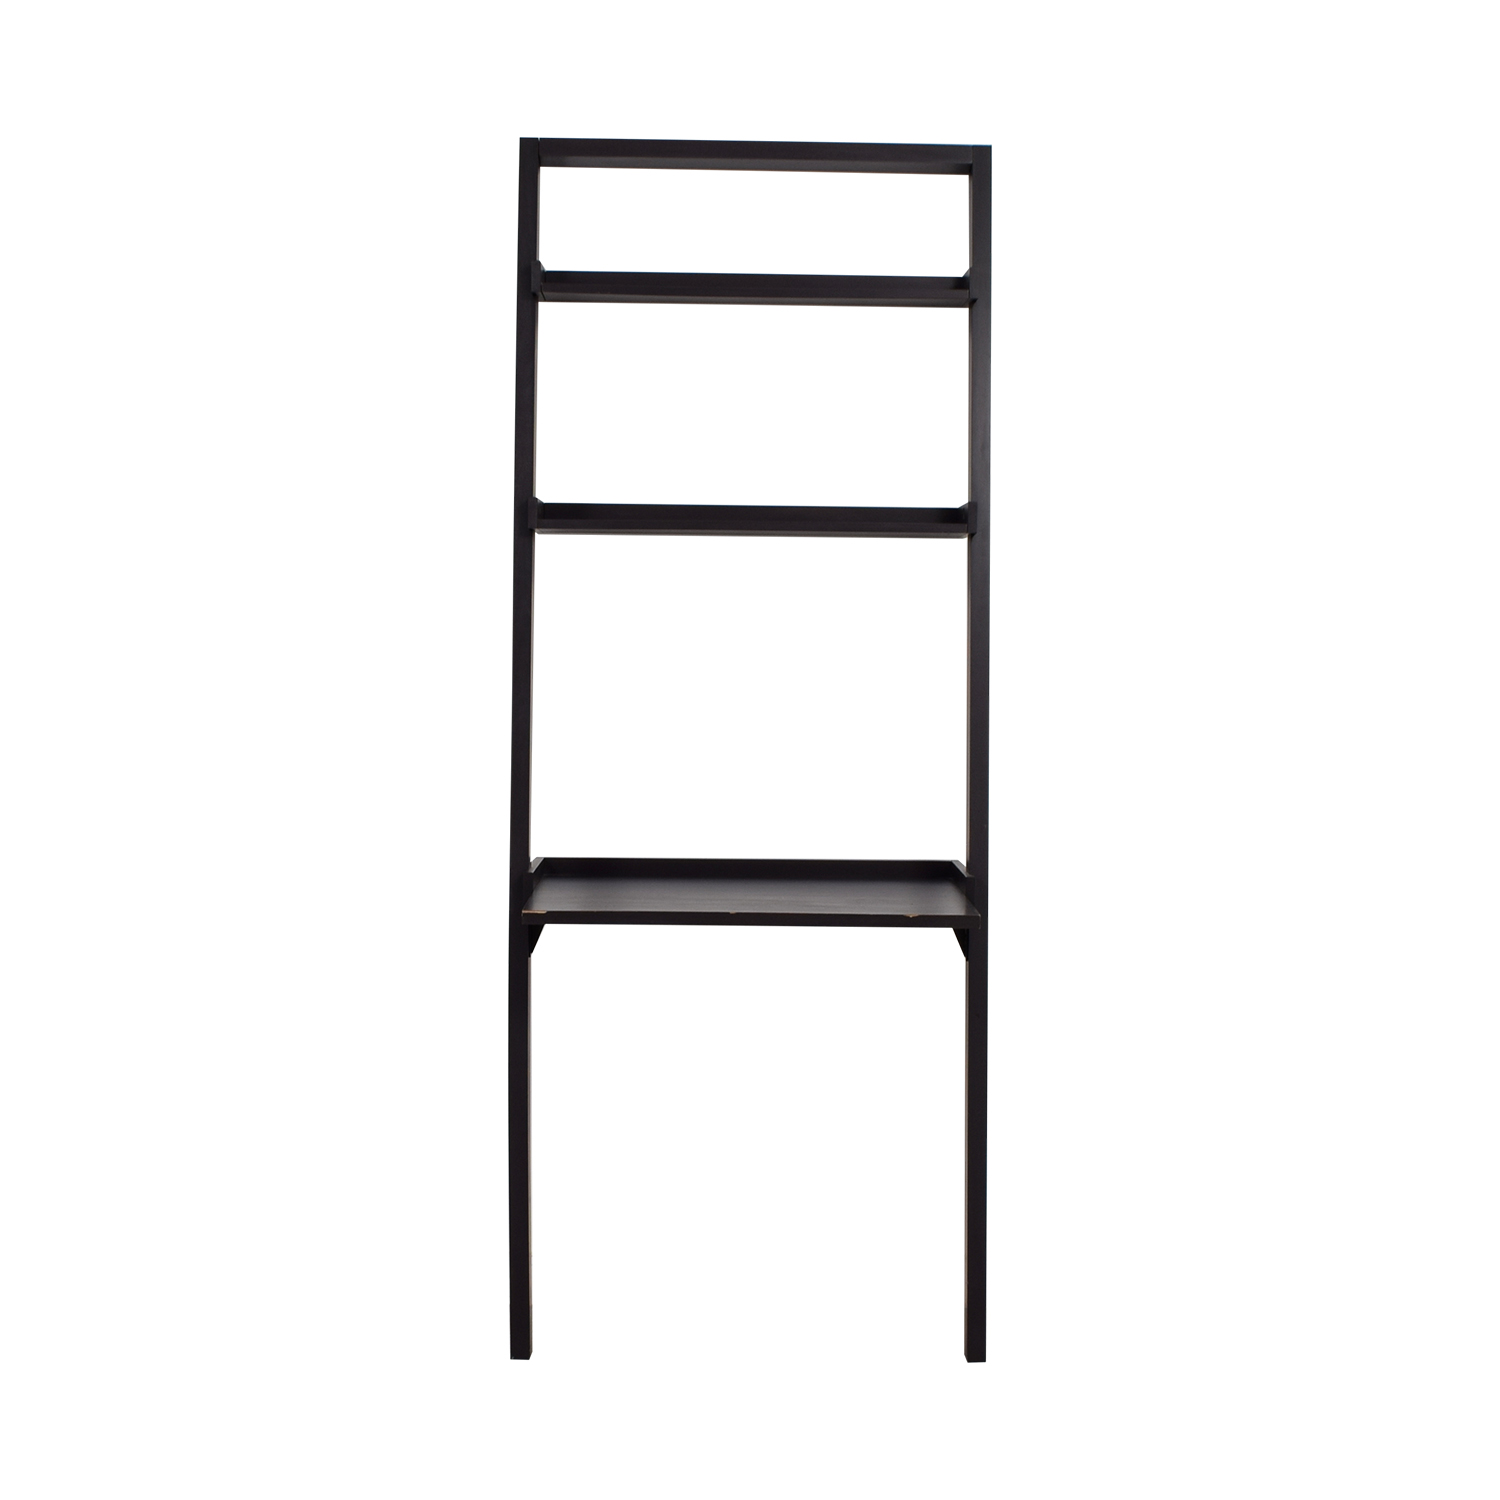 Bailey Bailey Black Leaning Desk with Shelves discount